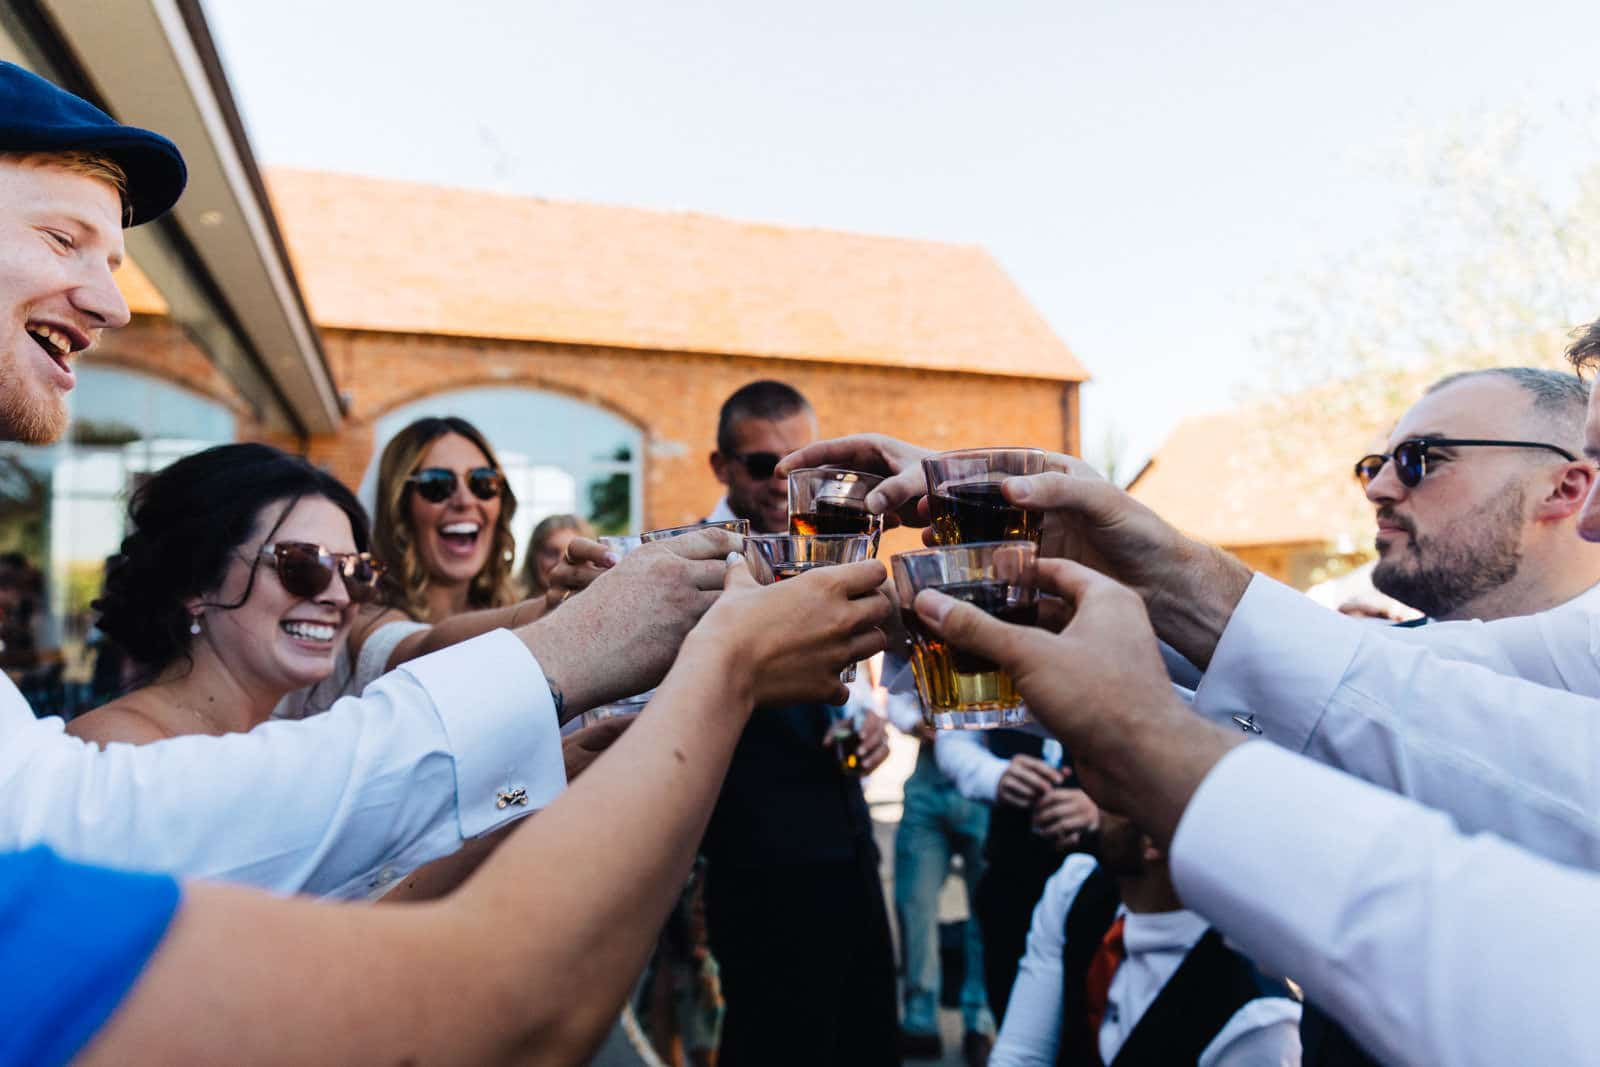 wedding guest downing shots at a wedding